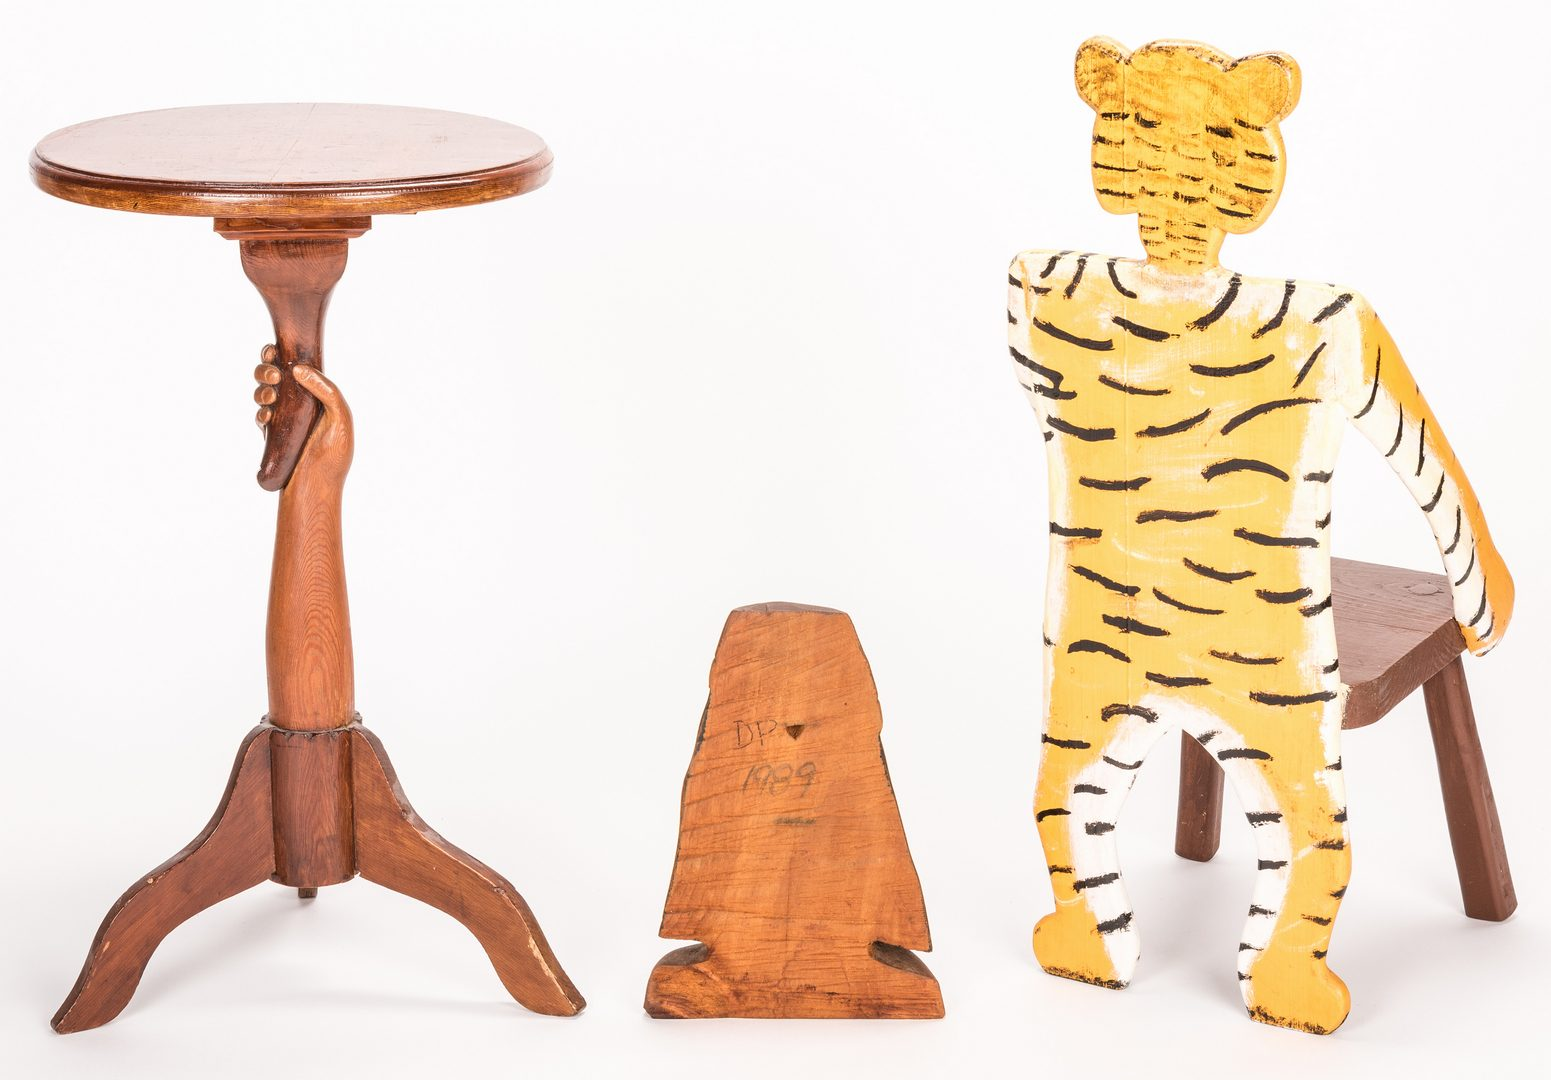 Lot 669: Pugh Tiger Chair & Indian Carving + Folk Art Table, 3 items